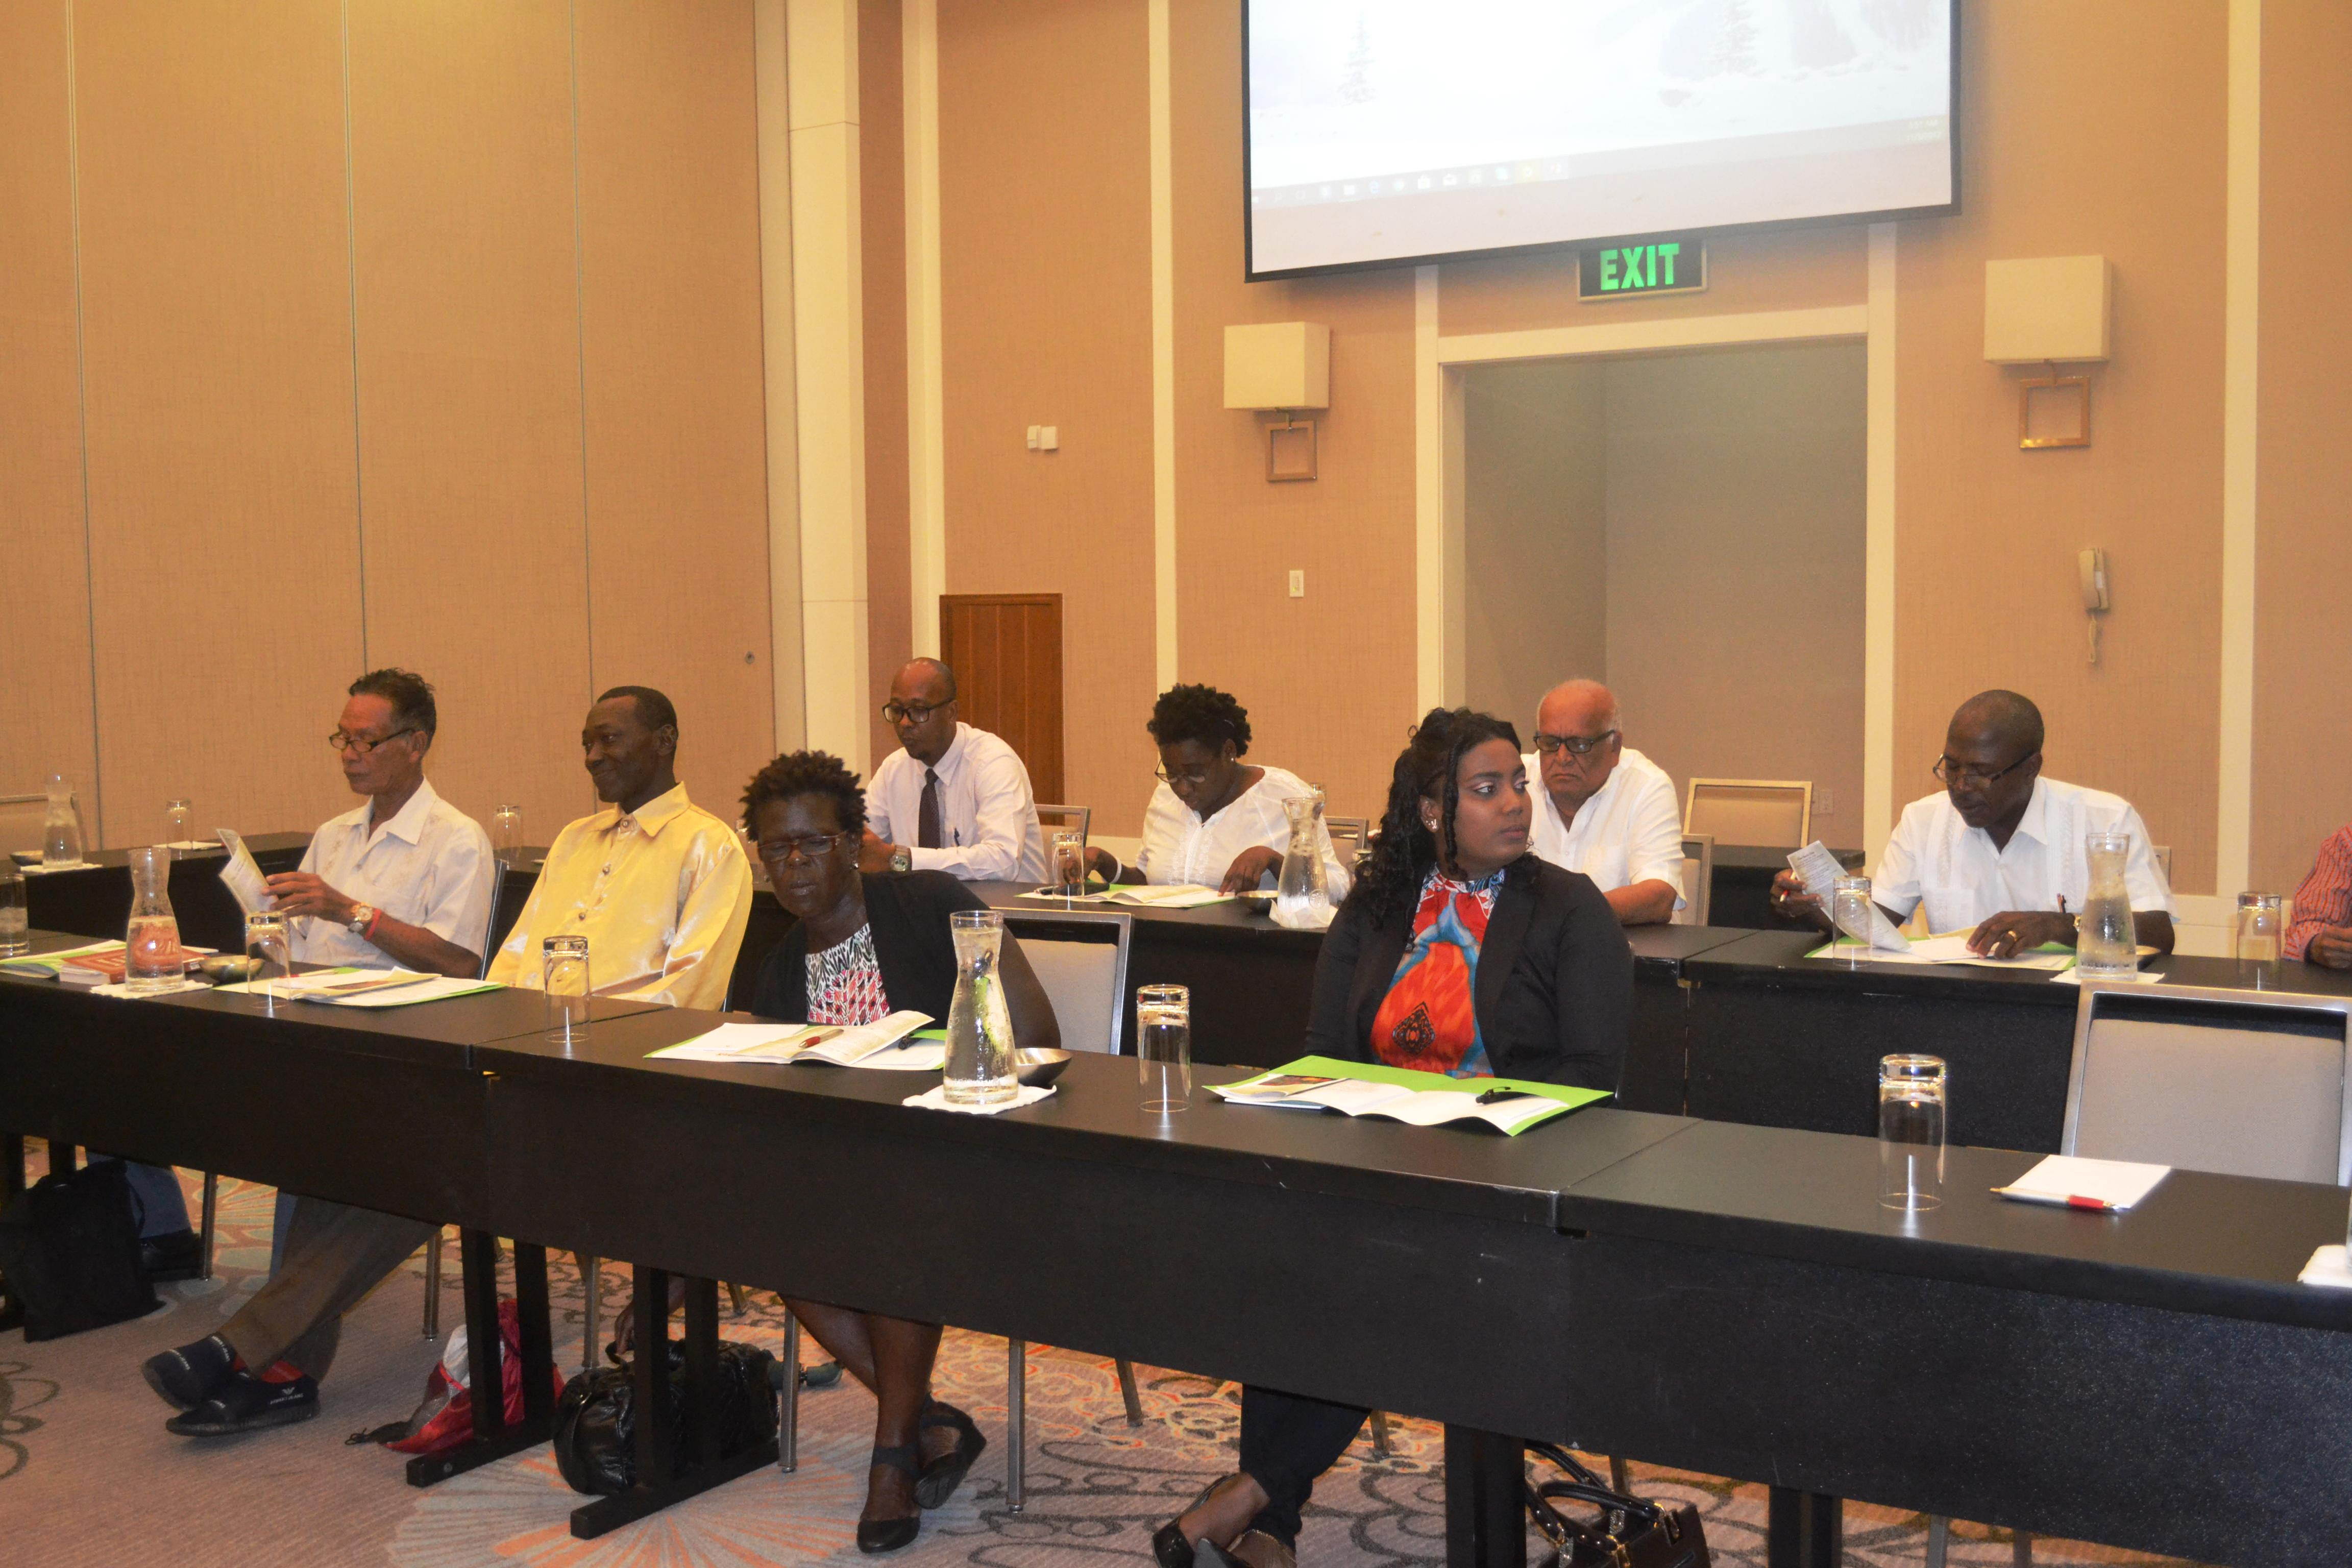 Participants at the consultation